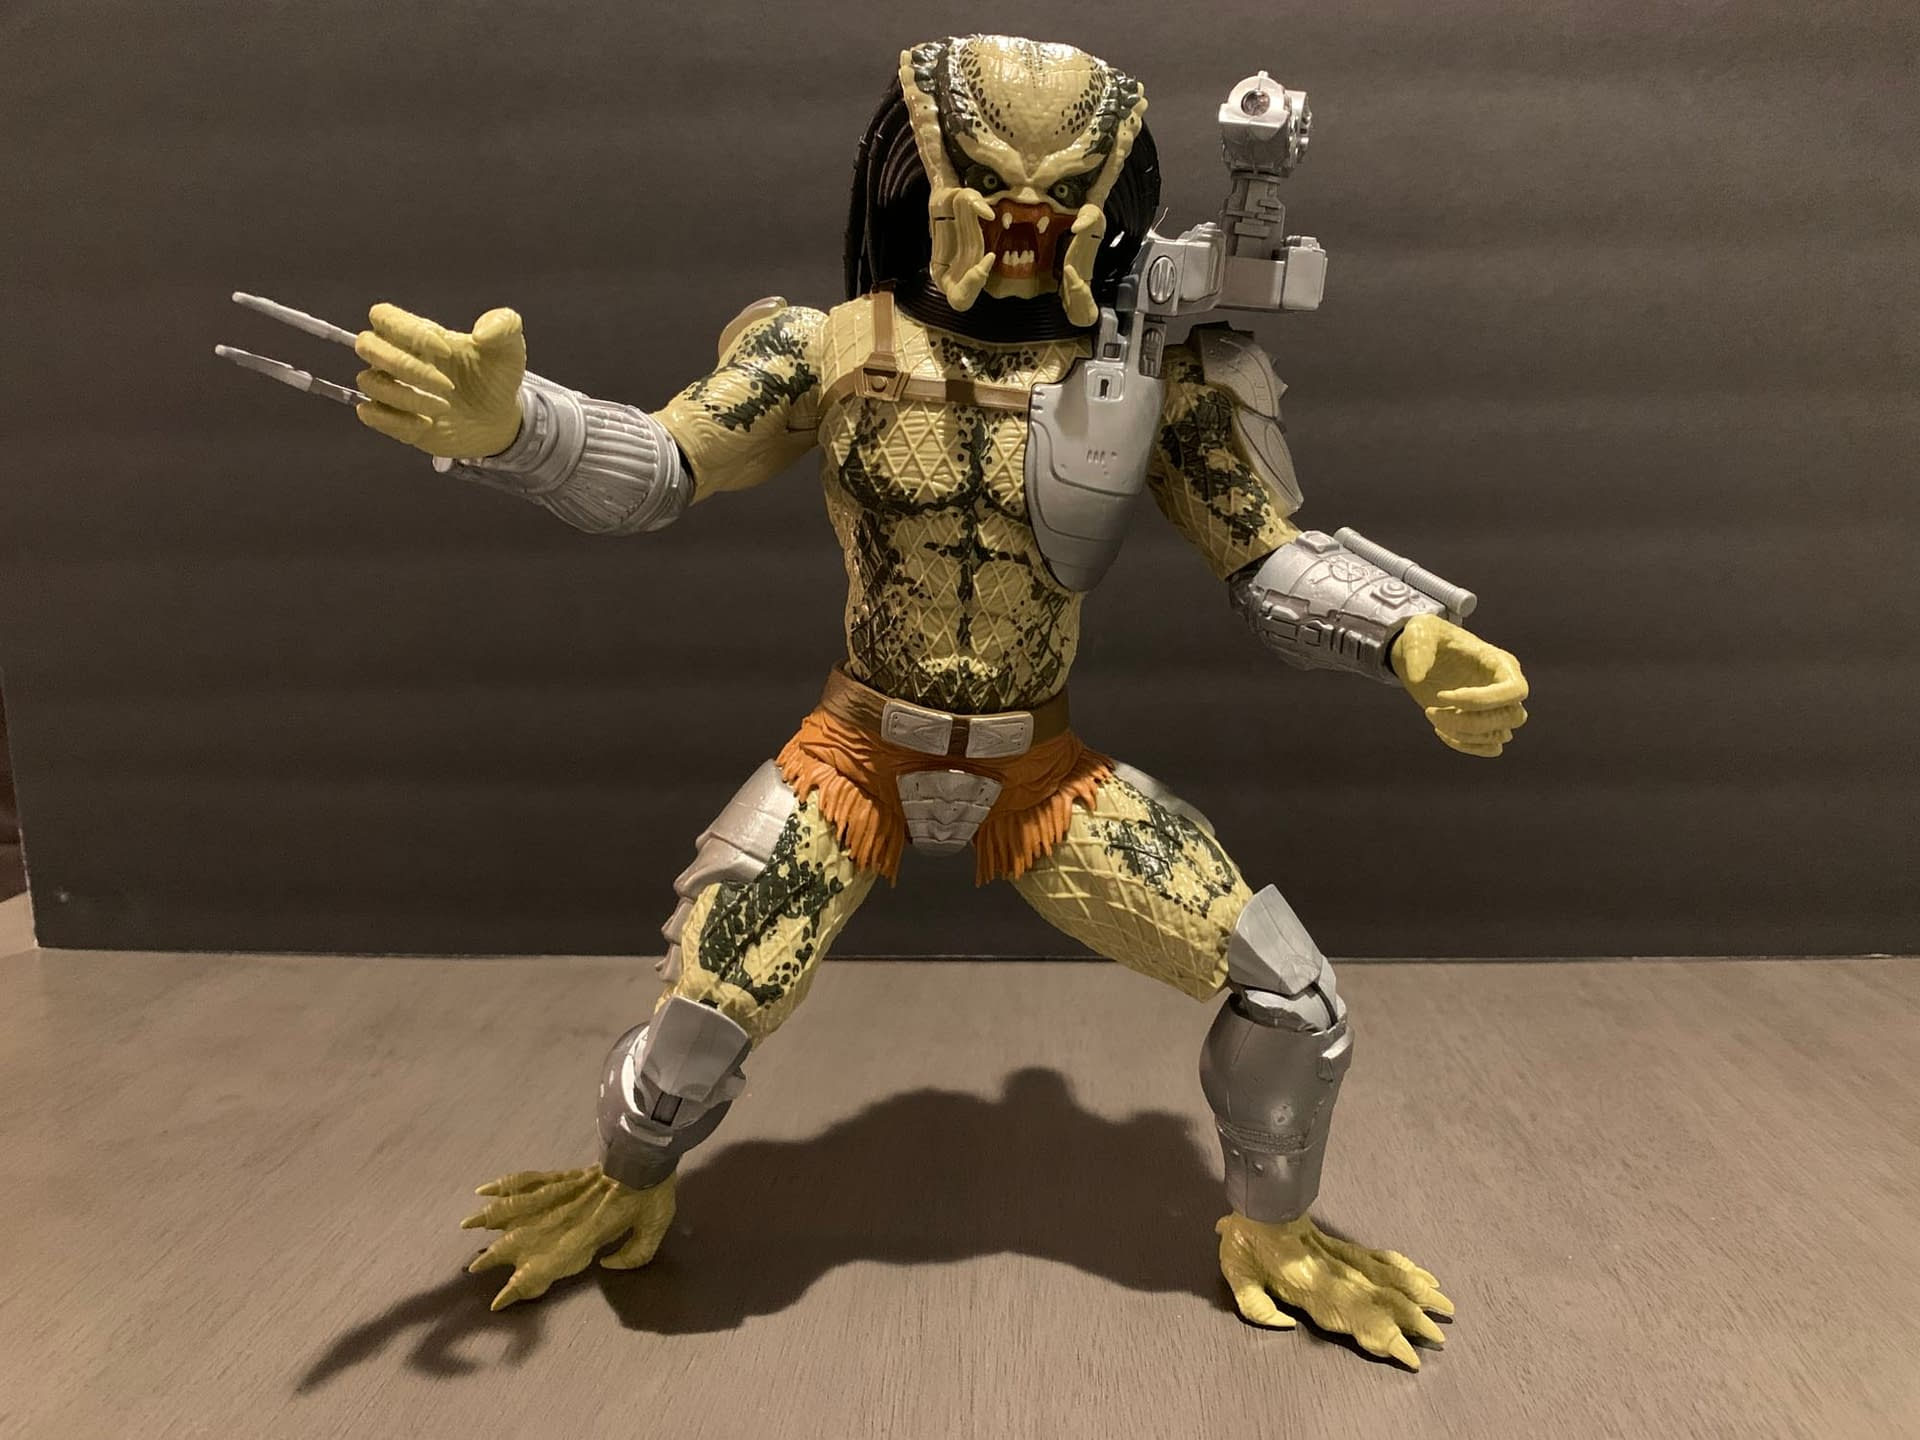 Predator Fans Have A new 12 Inch Figure To Get From Lanard Toys